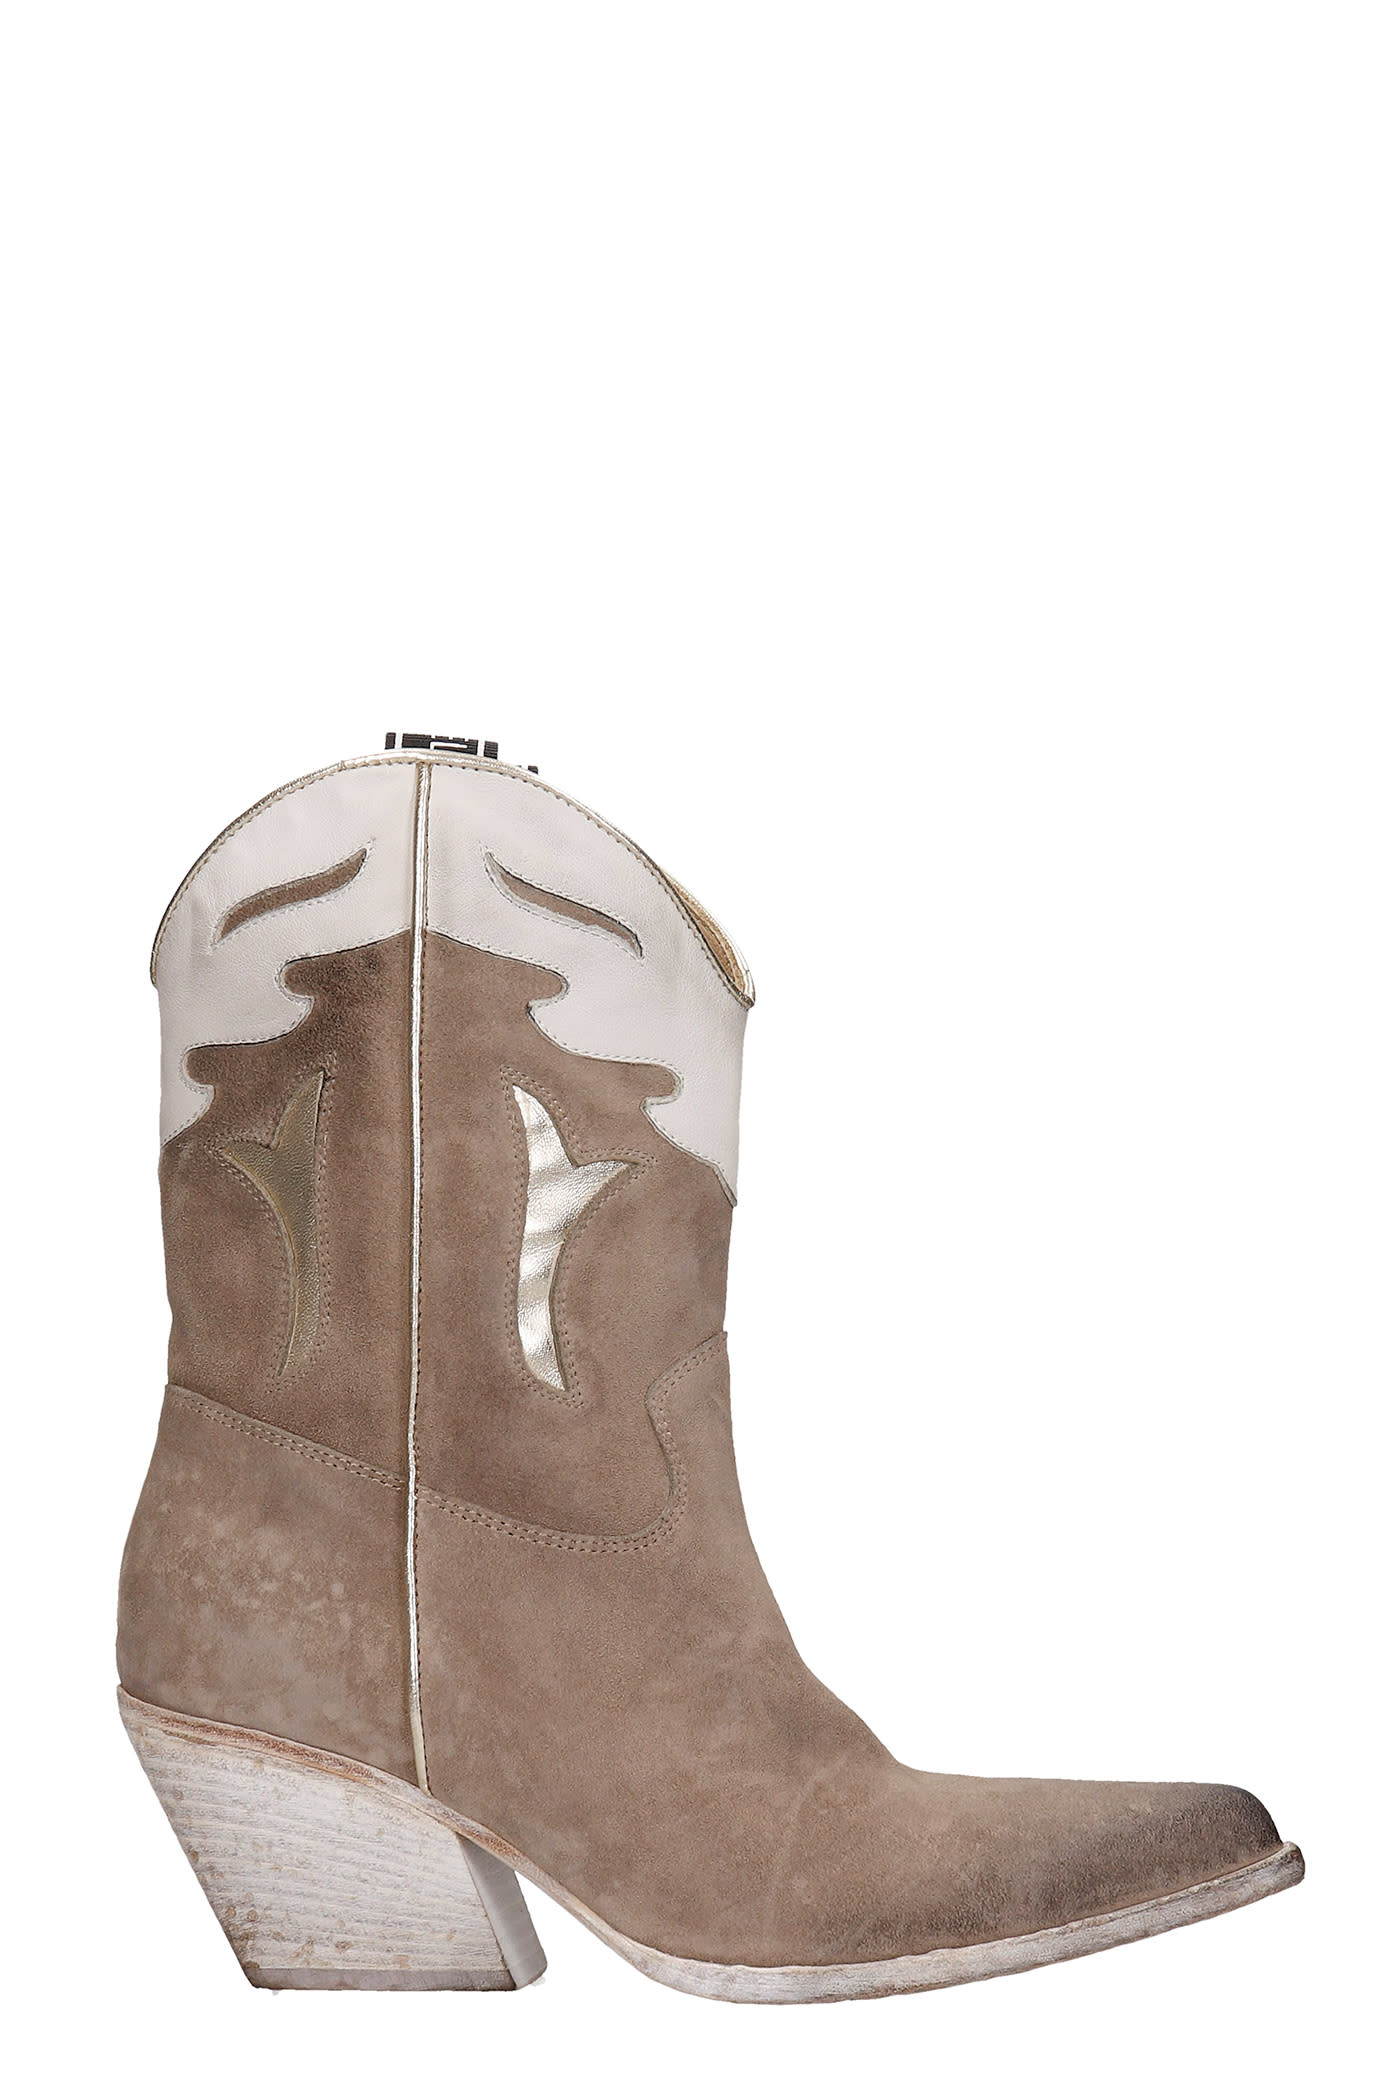 Texan Ankle Boots In Beige Suede